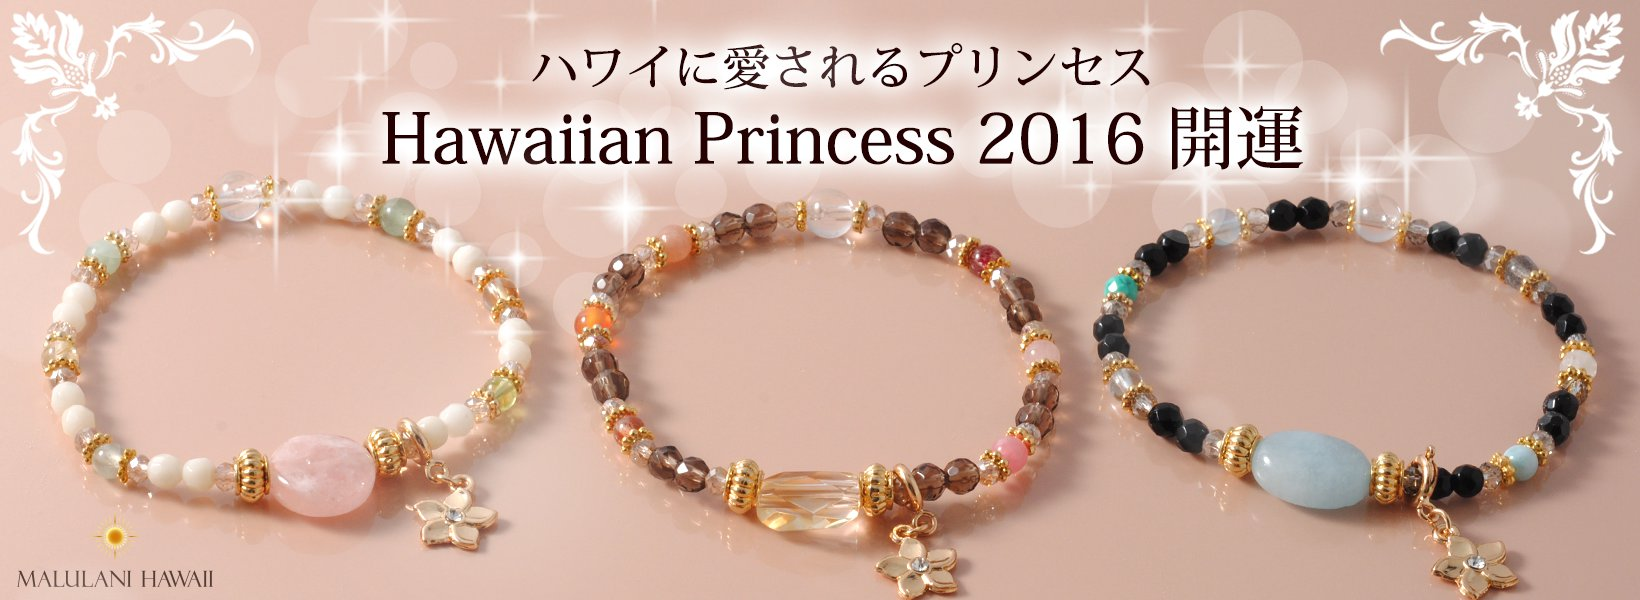 2016 ������hawaiian princess